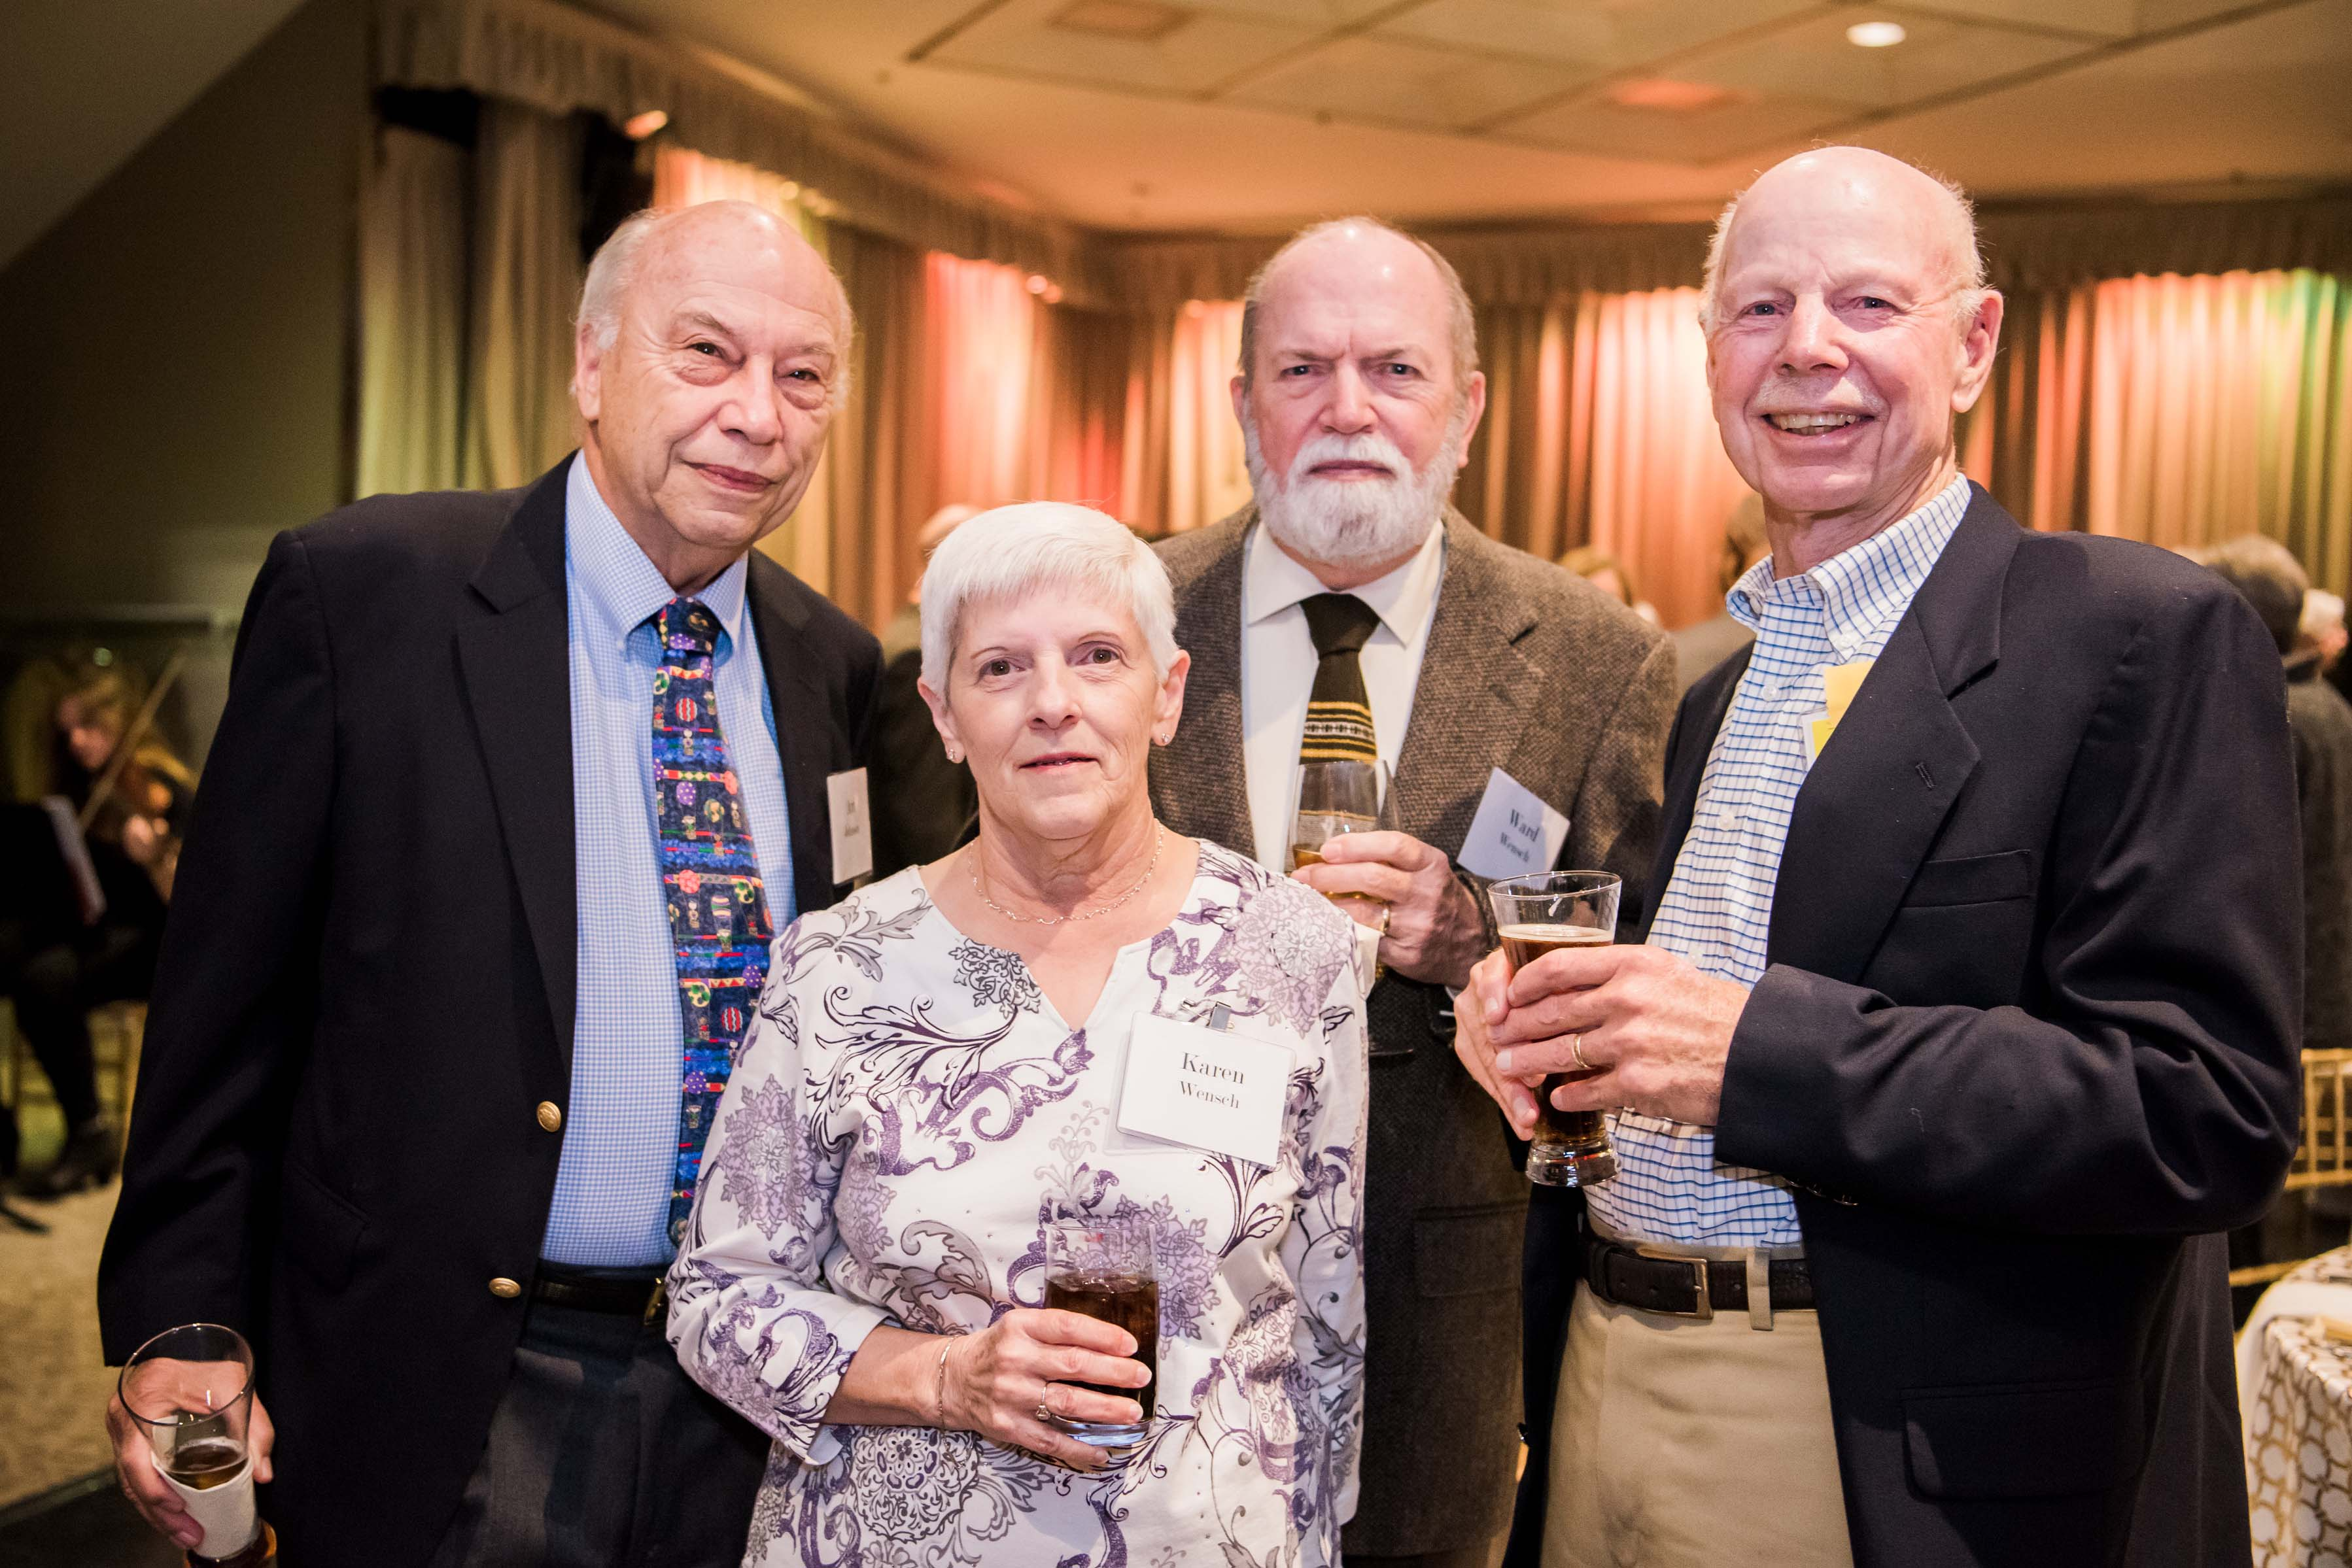 Group of older individuals pose with their drinks